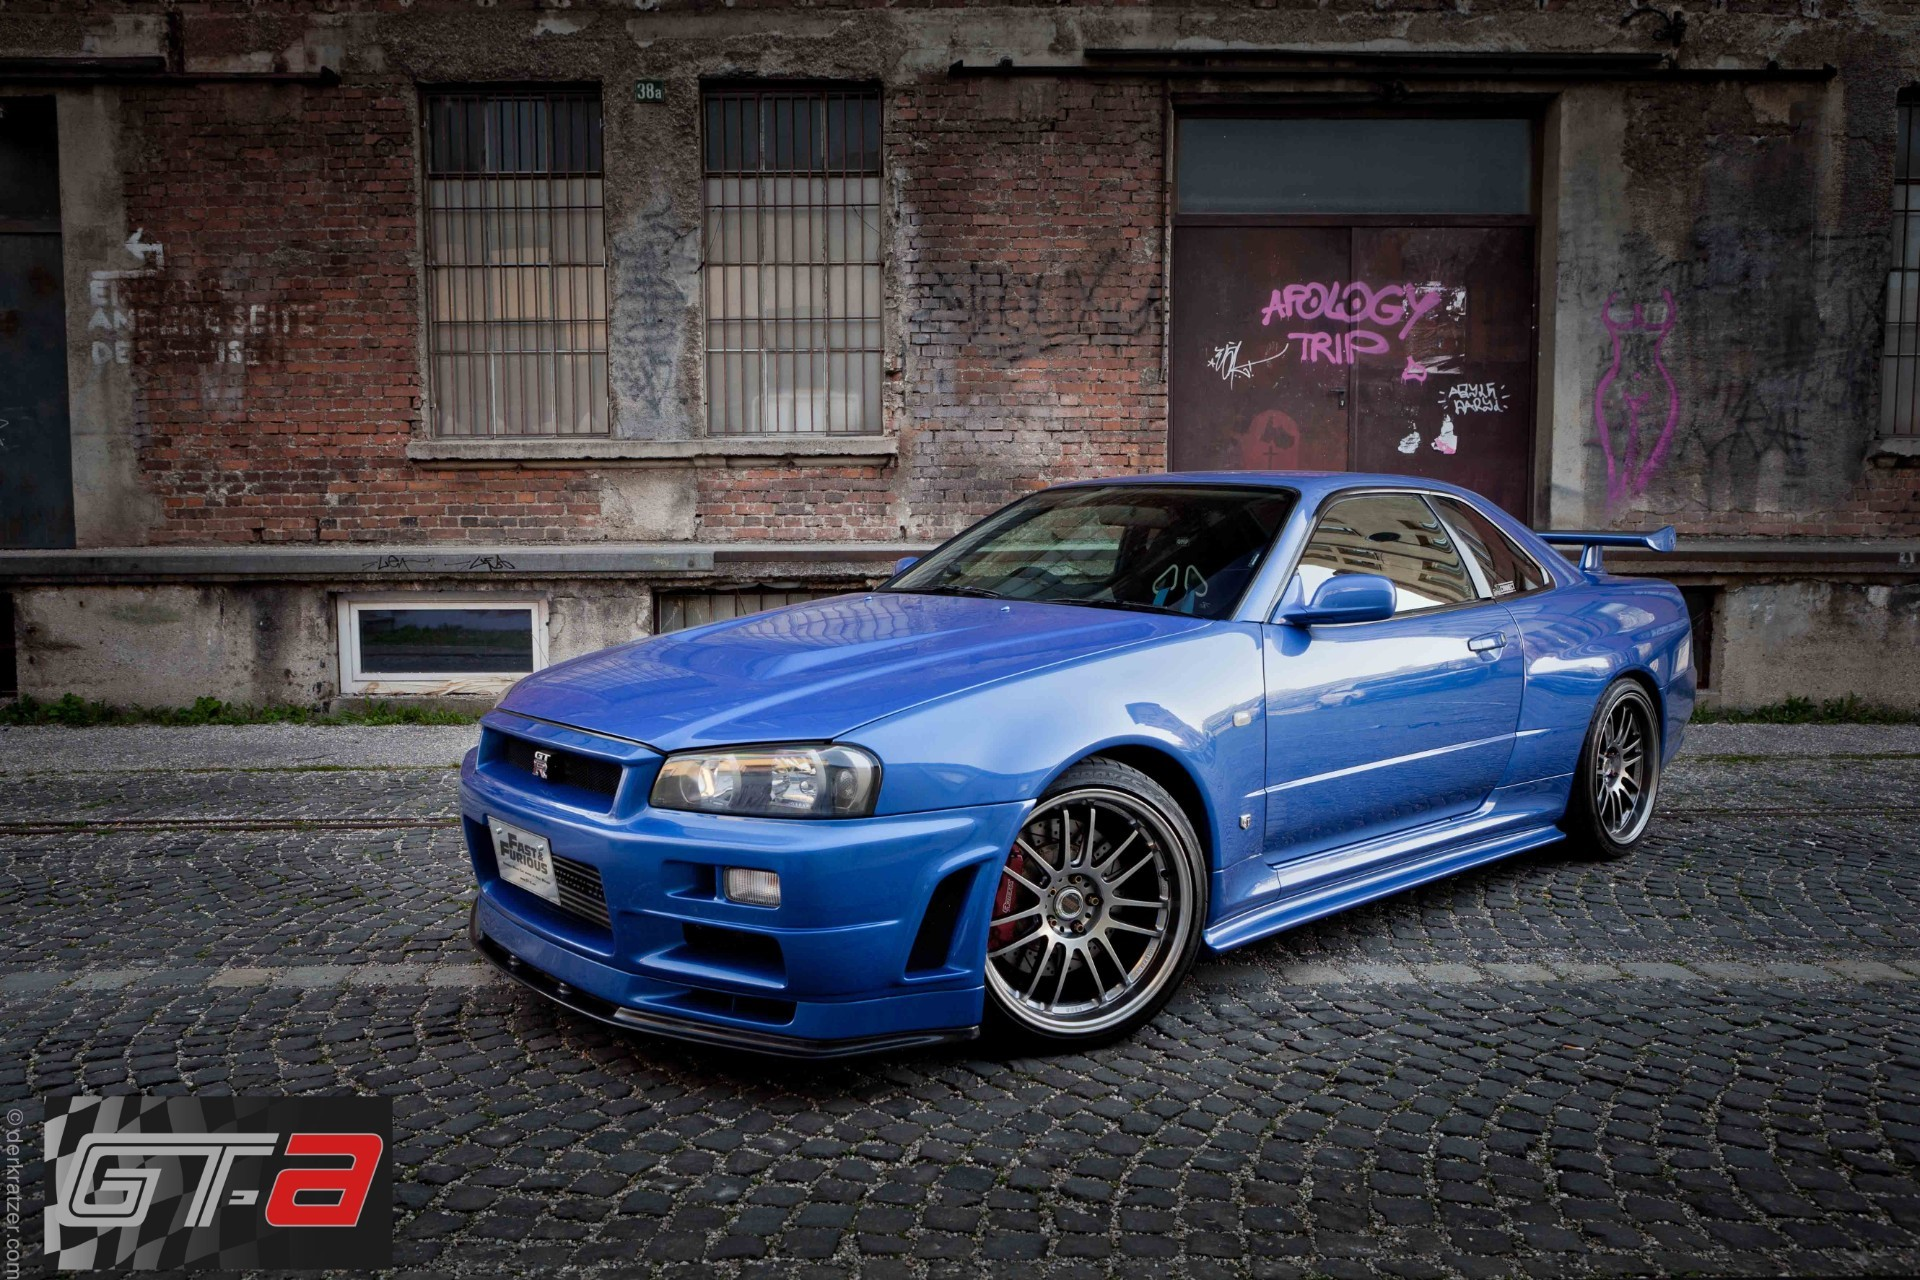 paul walkers fast furious 4 r34 nissan gt r for sale priced at 135 million - Fast And Furious Cars Skyline